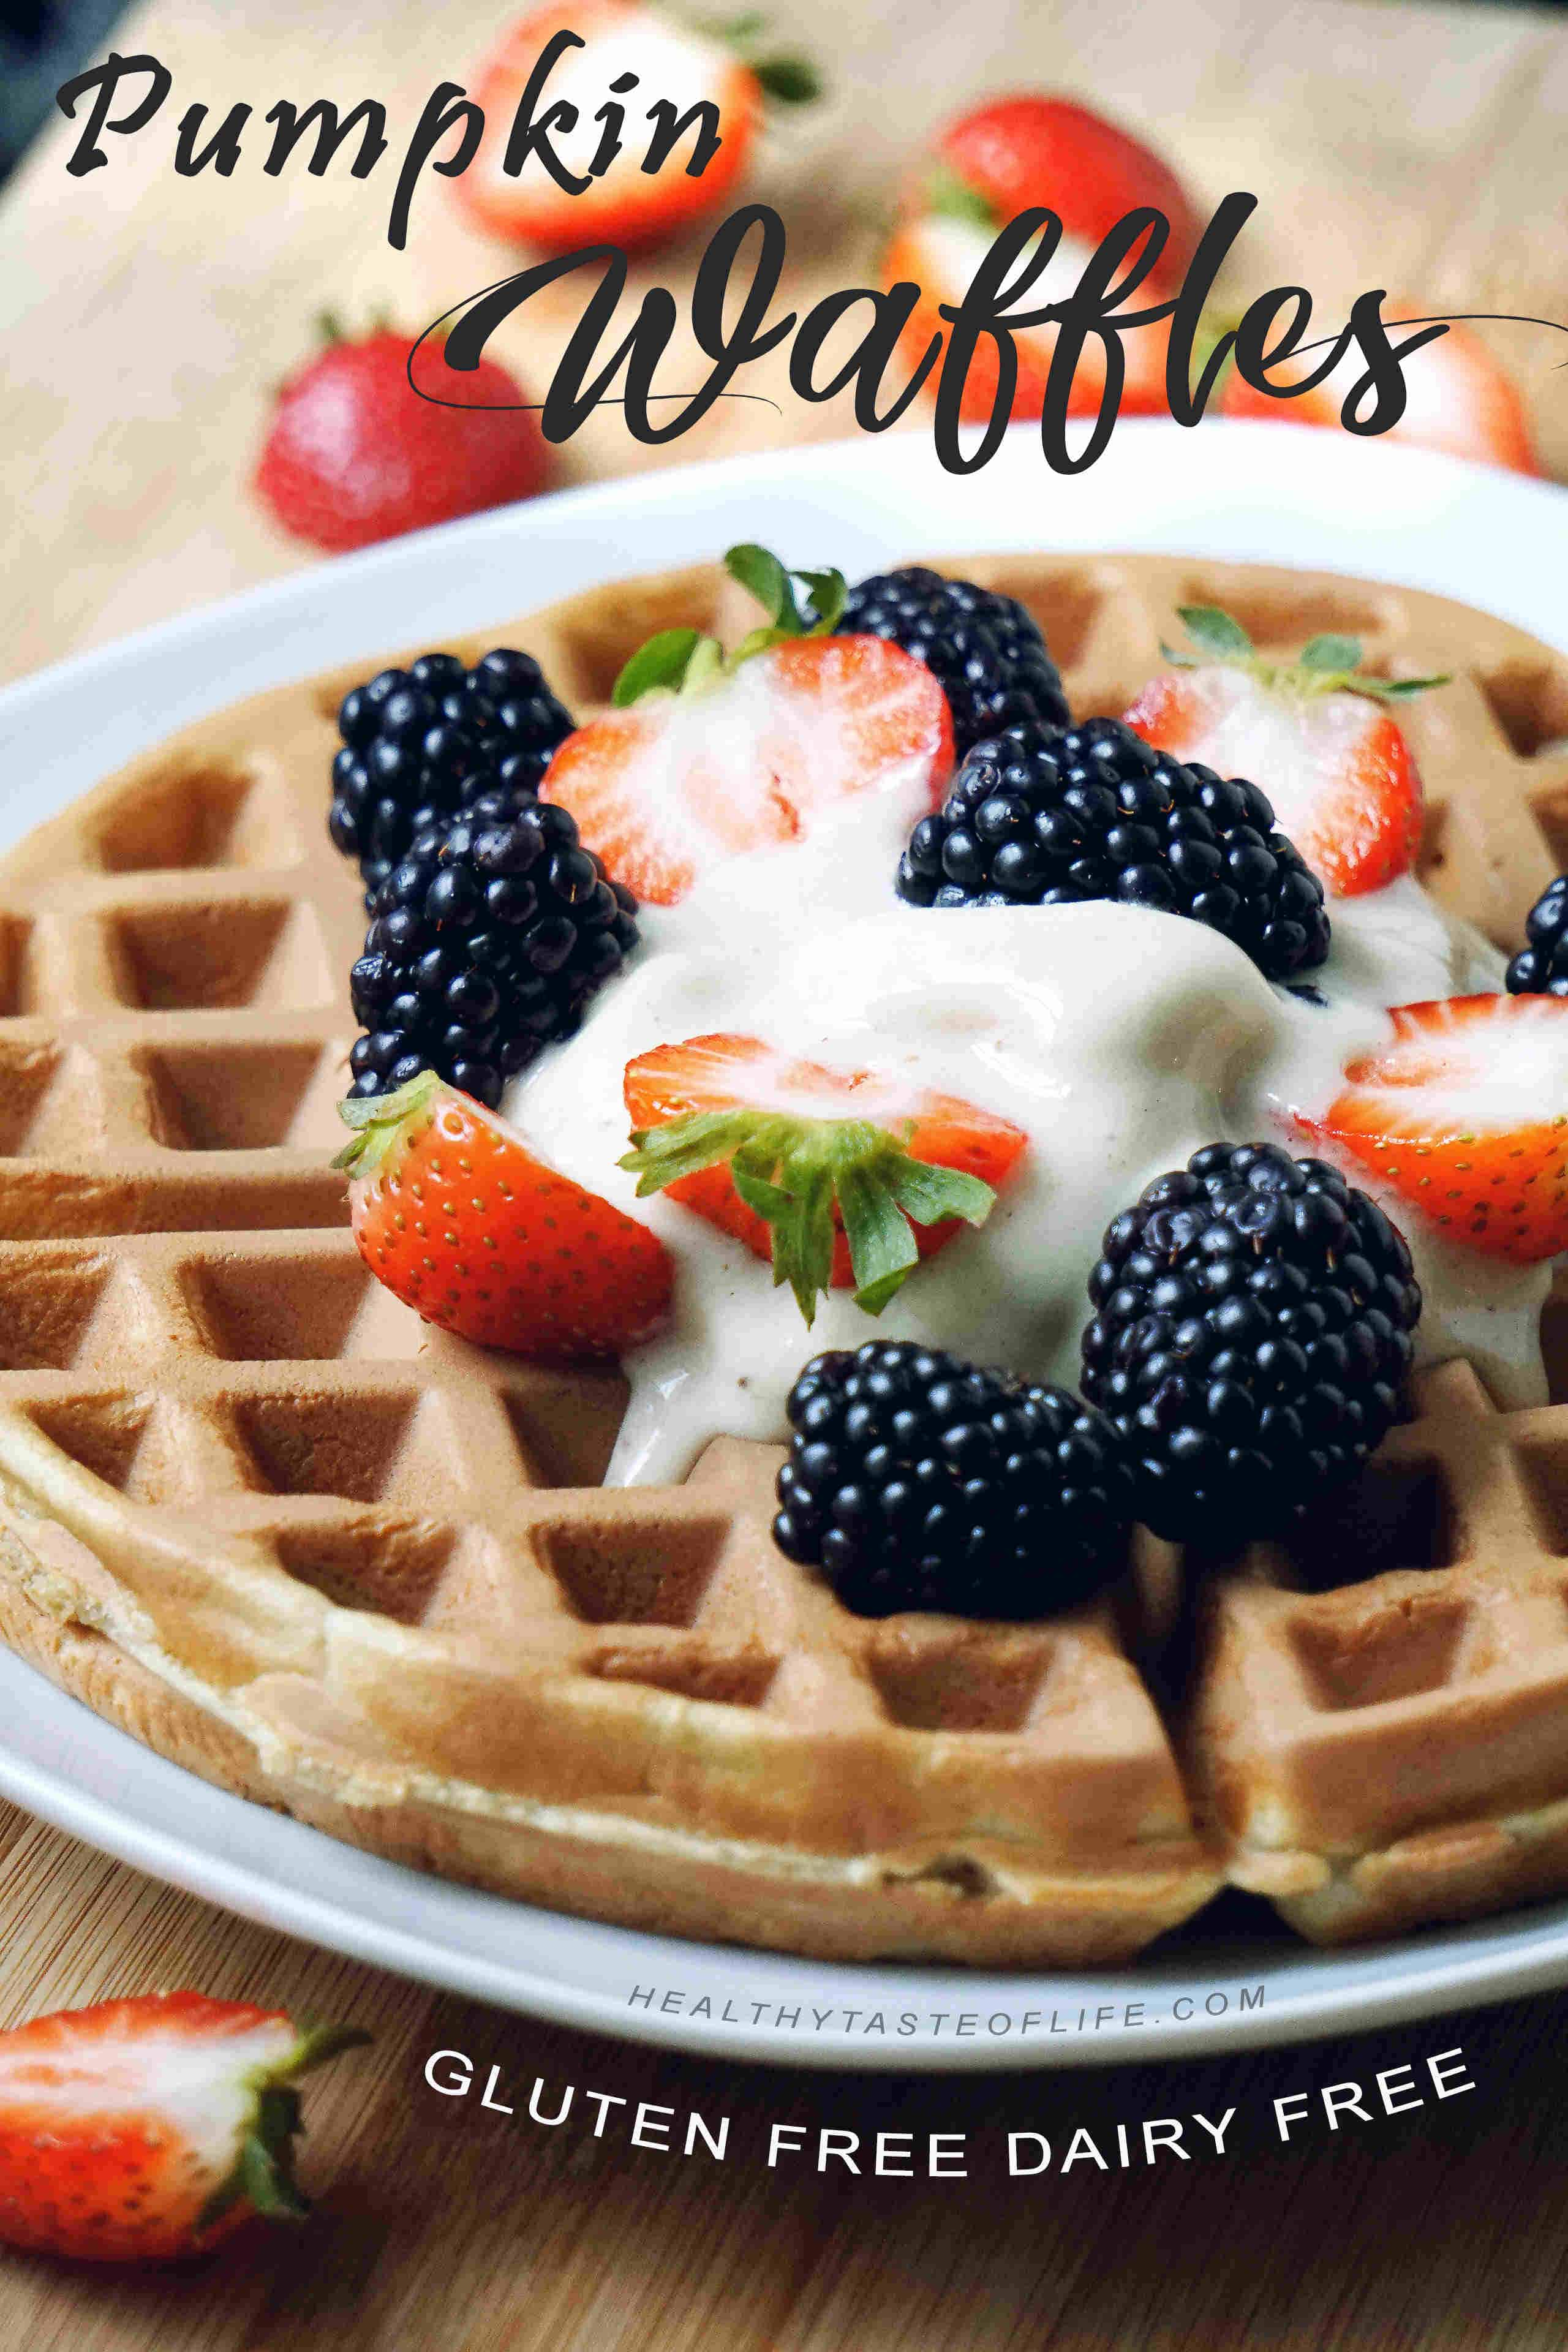 Learn how to make healthy homemade, gluten free pumpkin waffles with clean ingredients. This pumpkin waffles recipe is easy to make, its dairy free, gluten free, sugar free - perfect for a healthy breakfast or brunch.